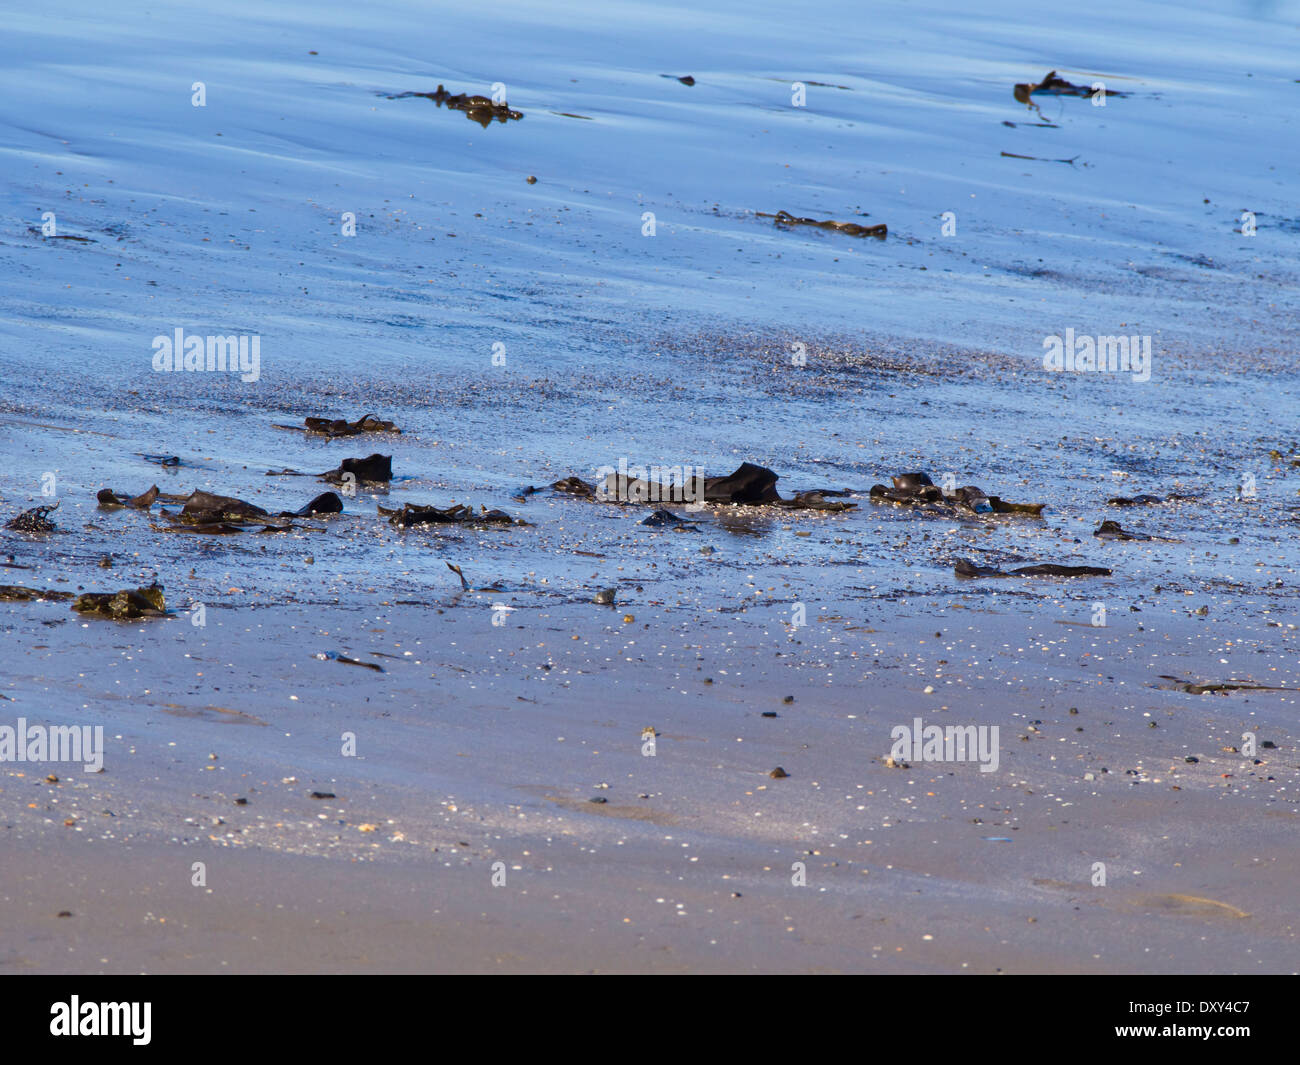 Fine grained beach sand on the North Sea coast of Norway, reflecting the blue sky - Stock Image